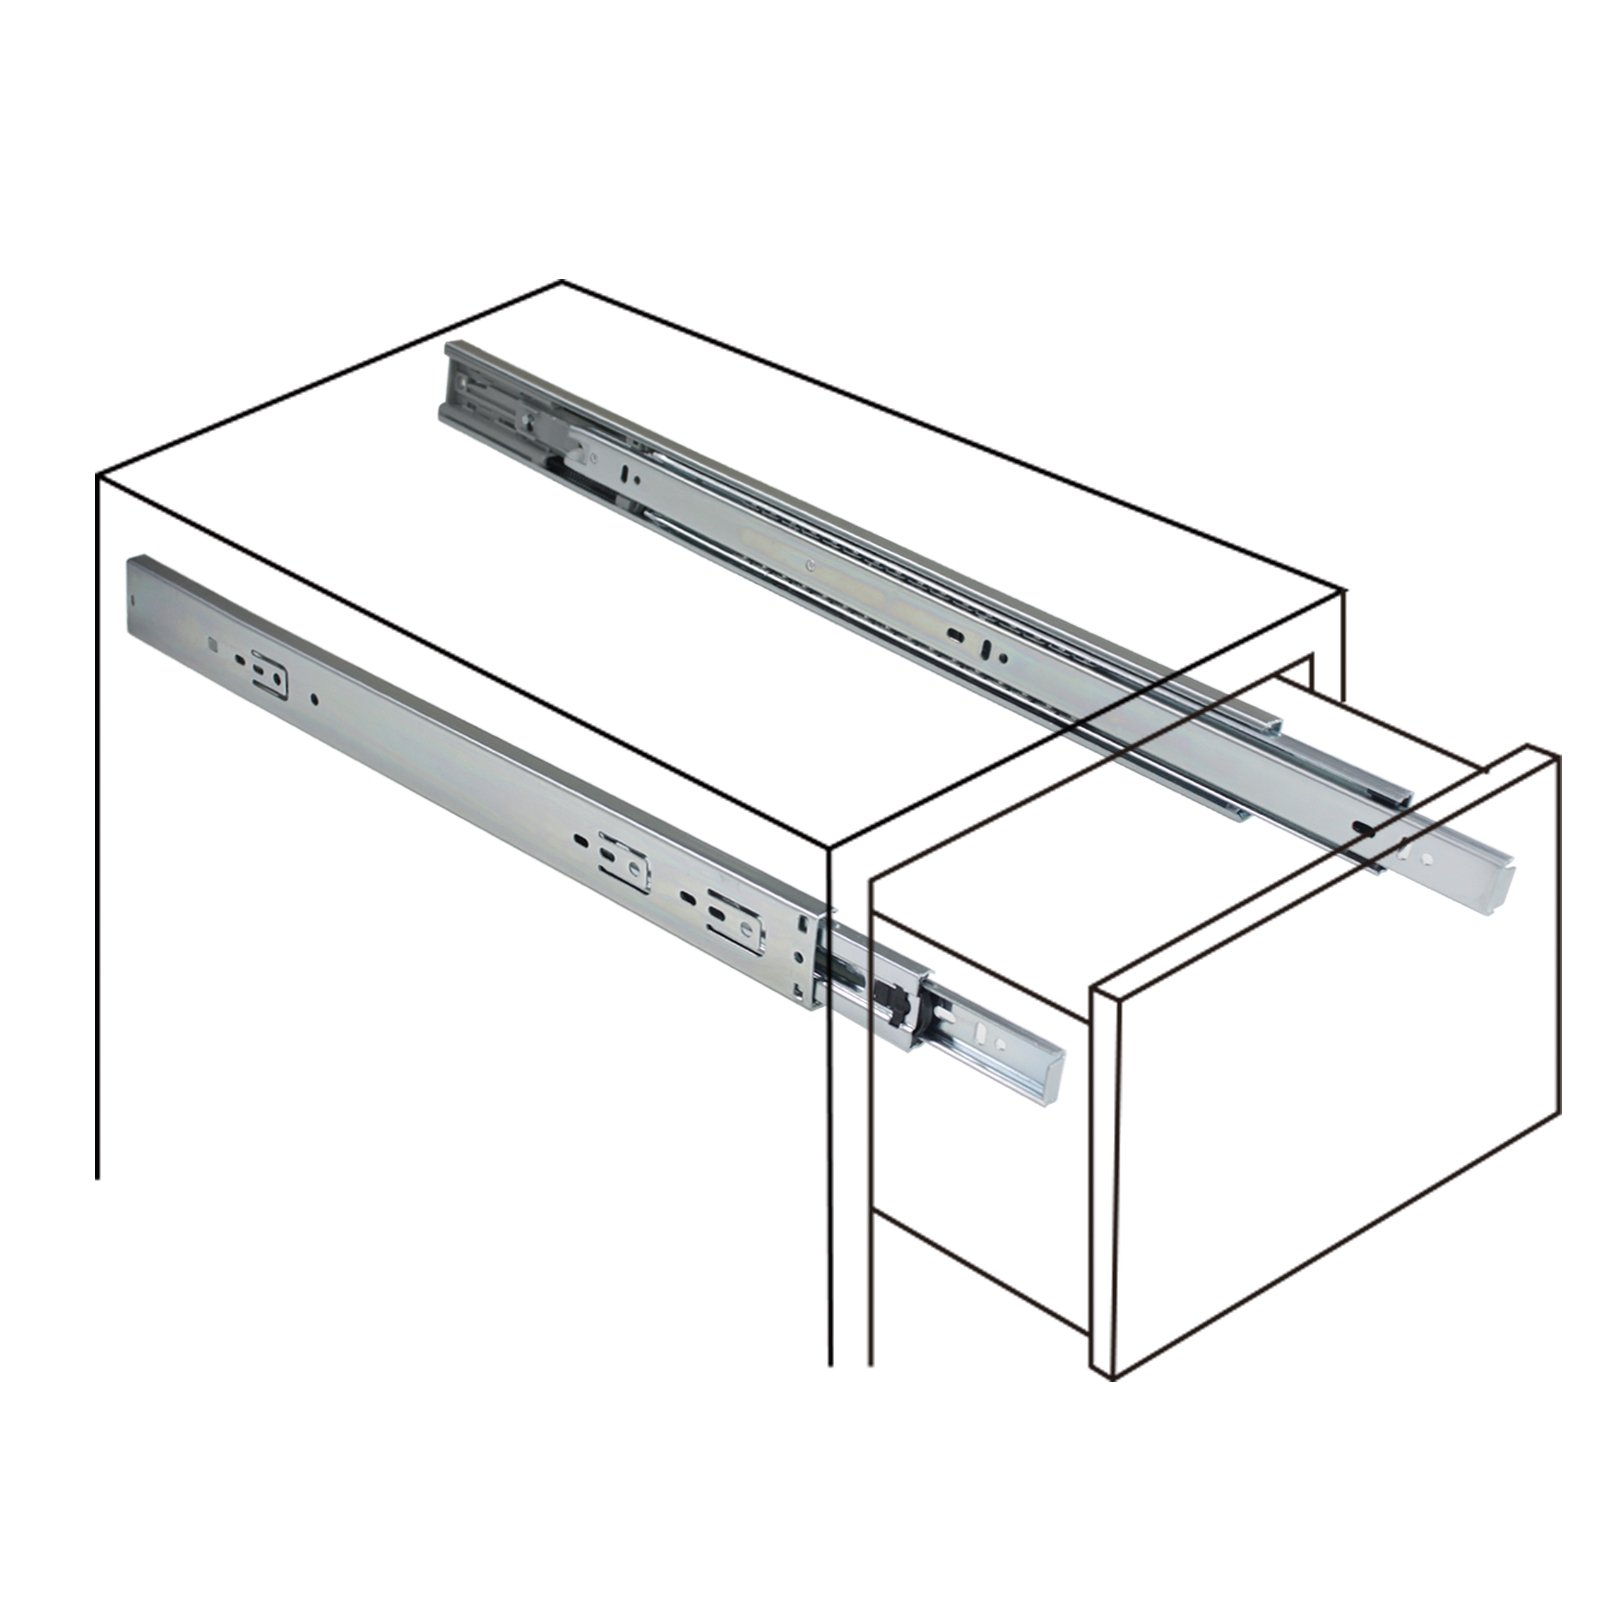 22-Inch Heavy Duty Full Extension Ball Bearing Drawer Slides Soft Close Rail Runners 6Pair(12 Pieces) by Gobrico (Image #6)